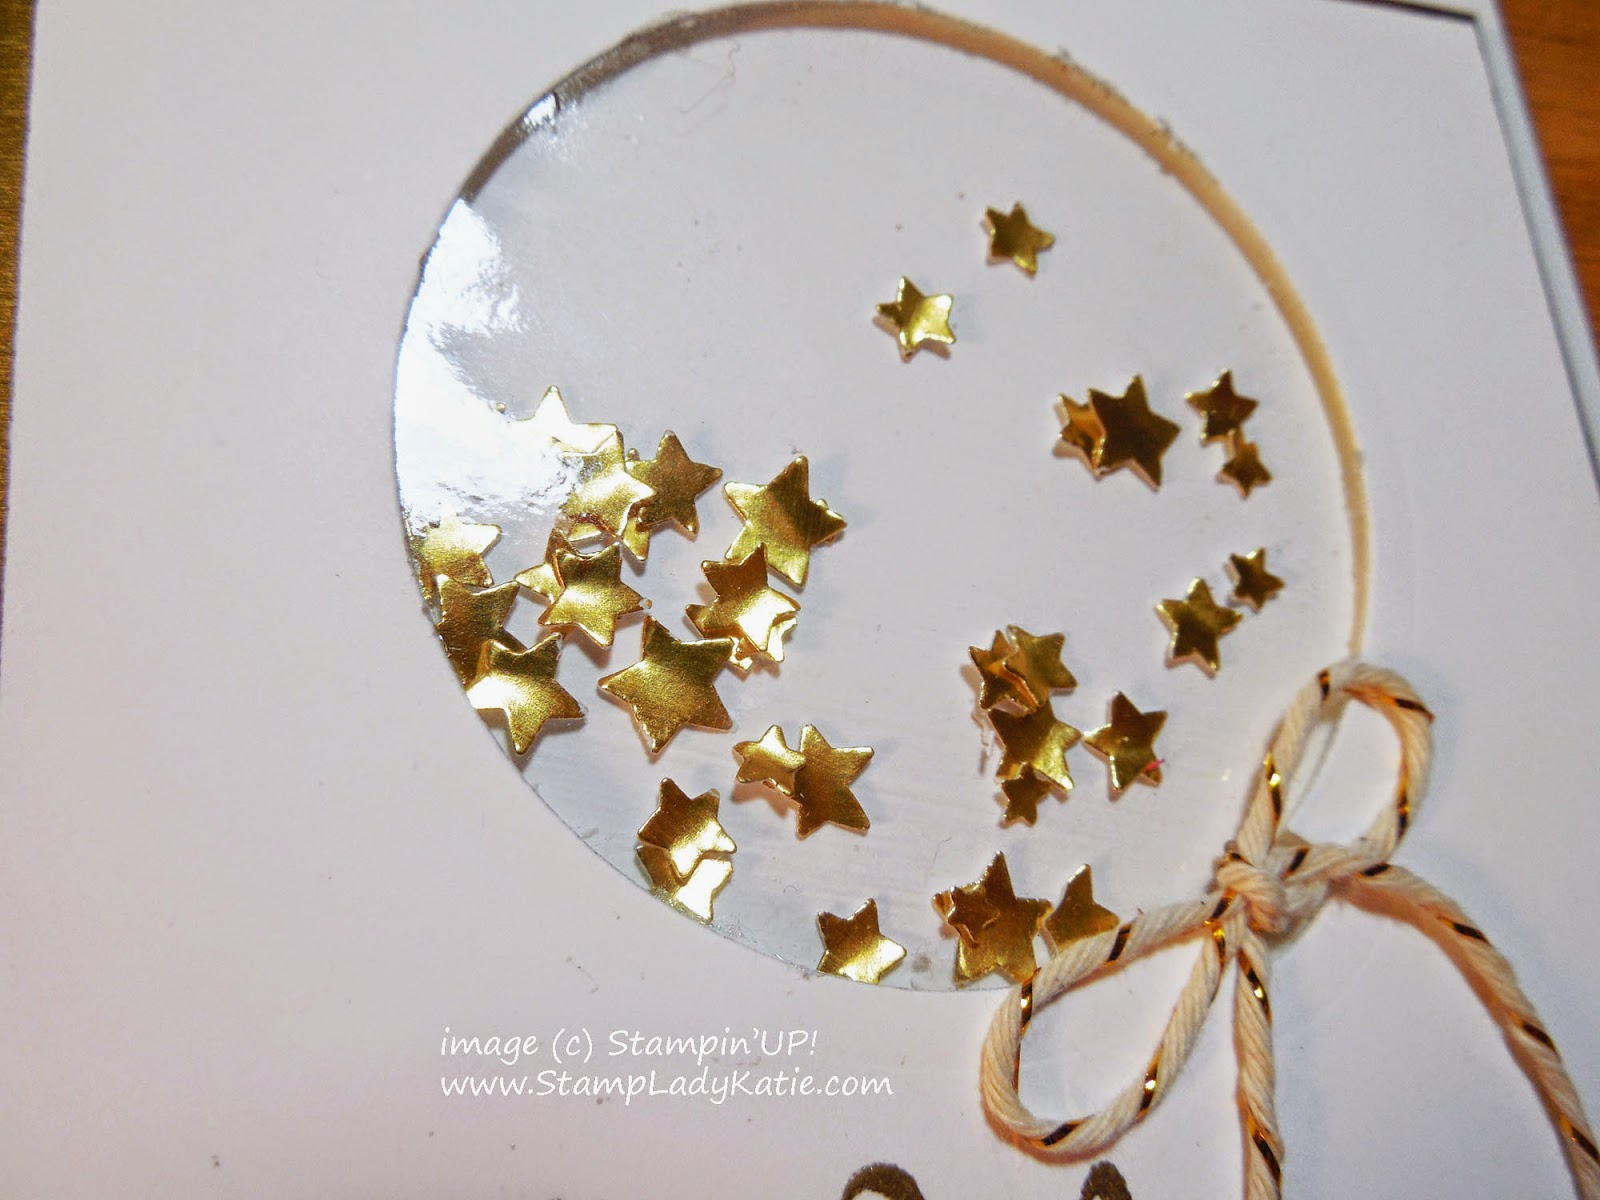 Shaker Card made with Stampin'UP!'s Confetti Stars Border Punch